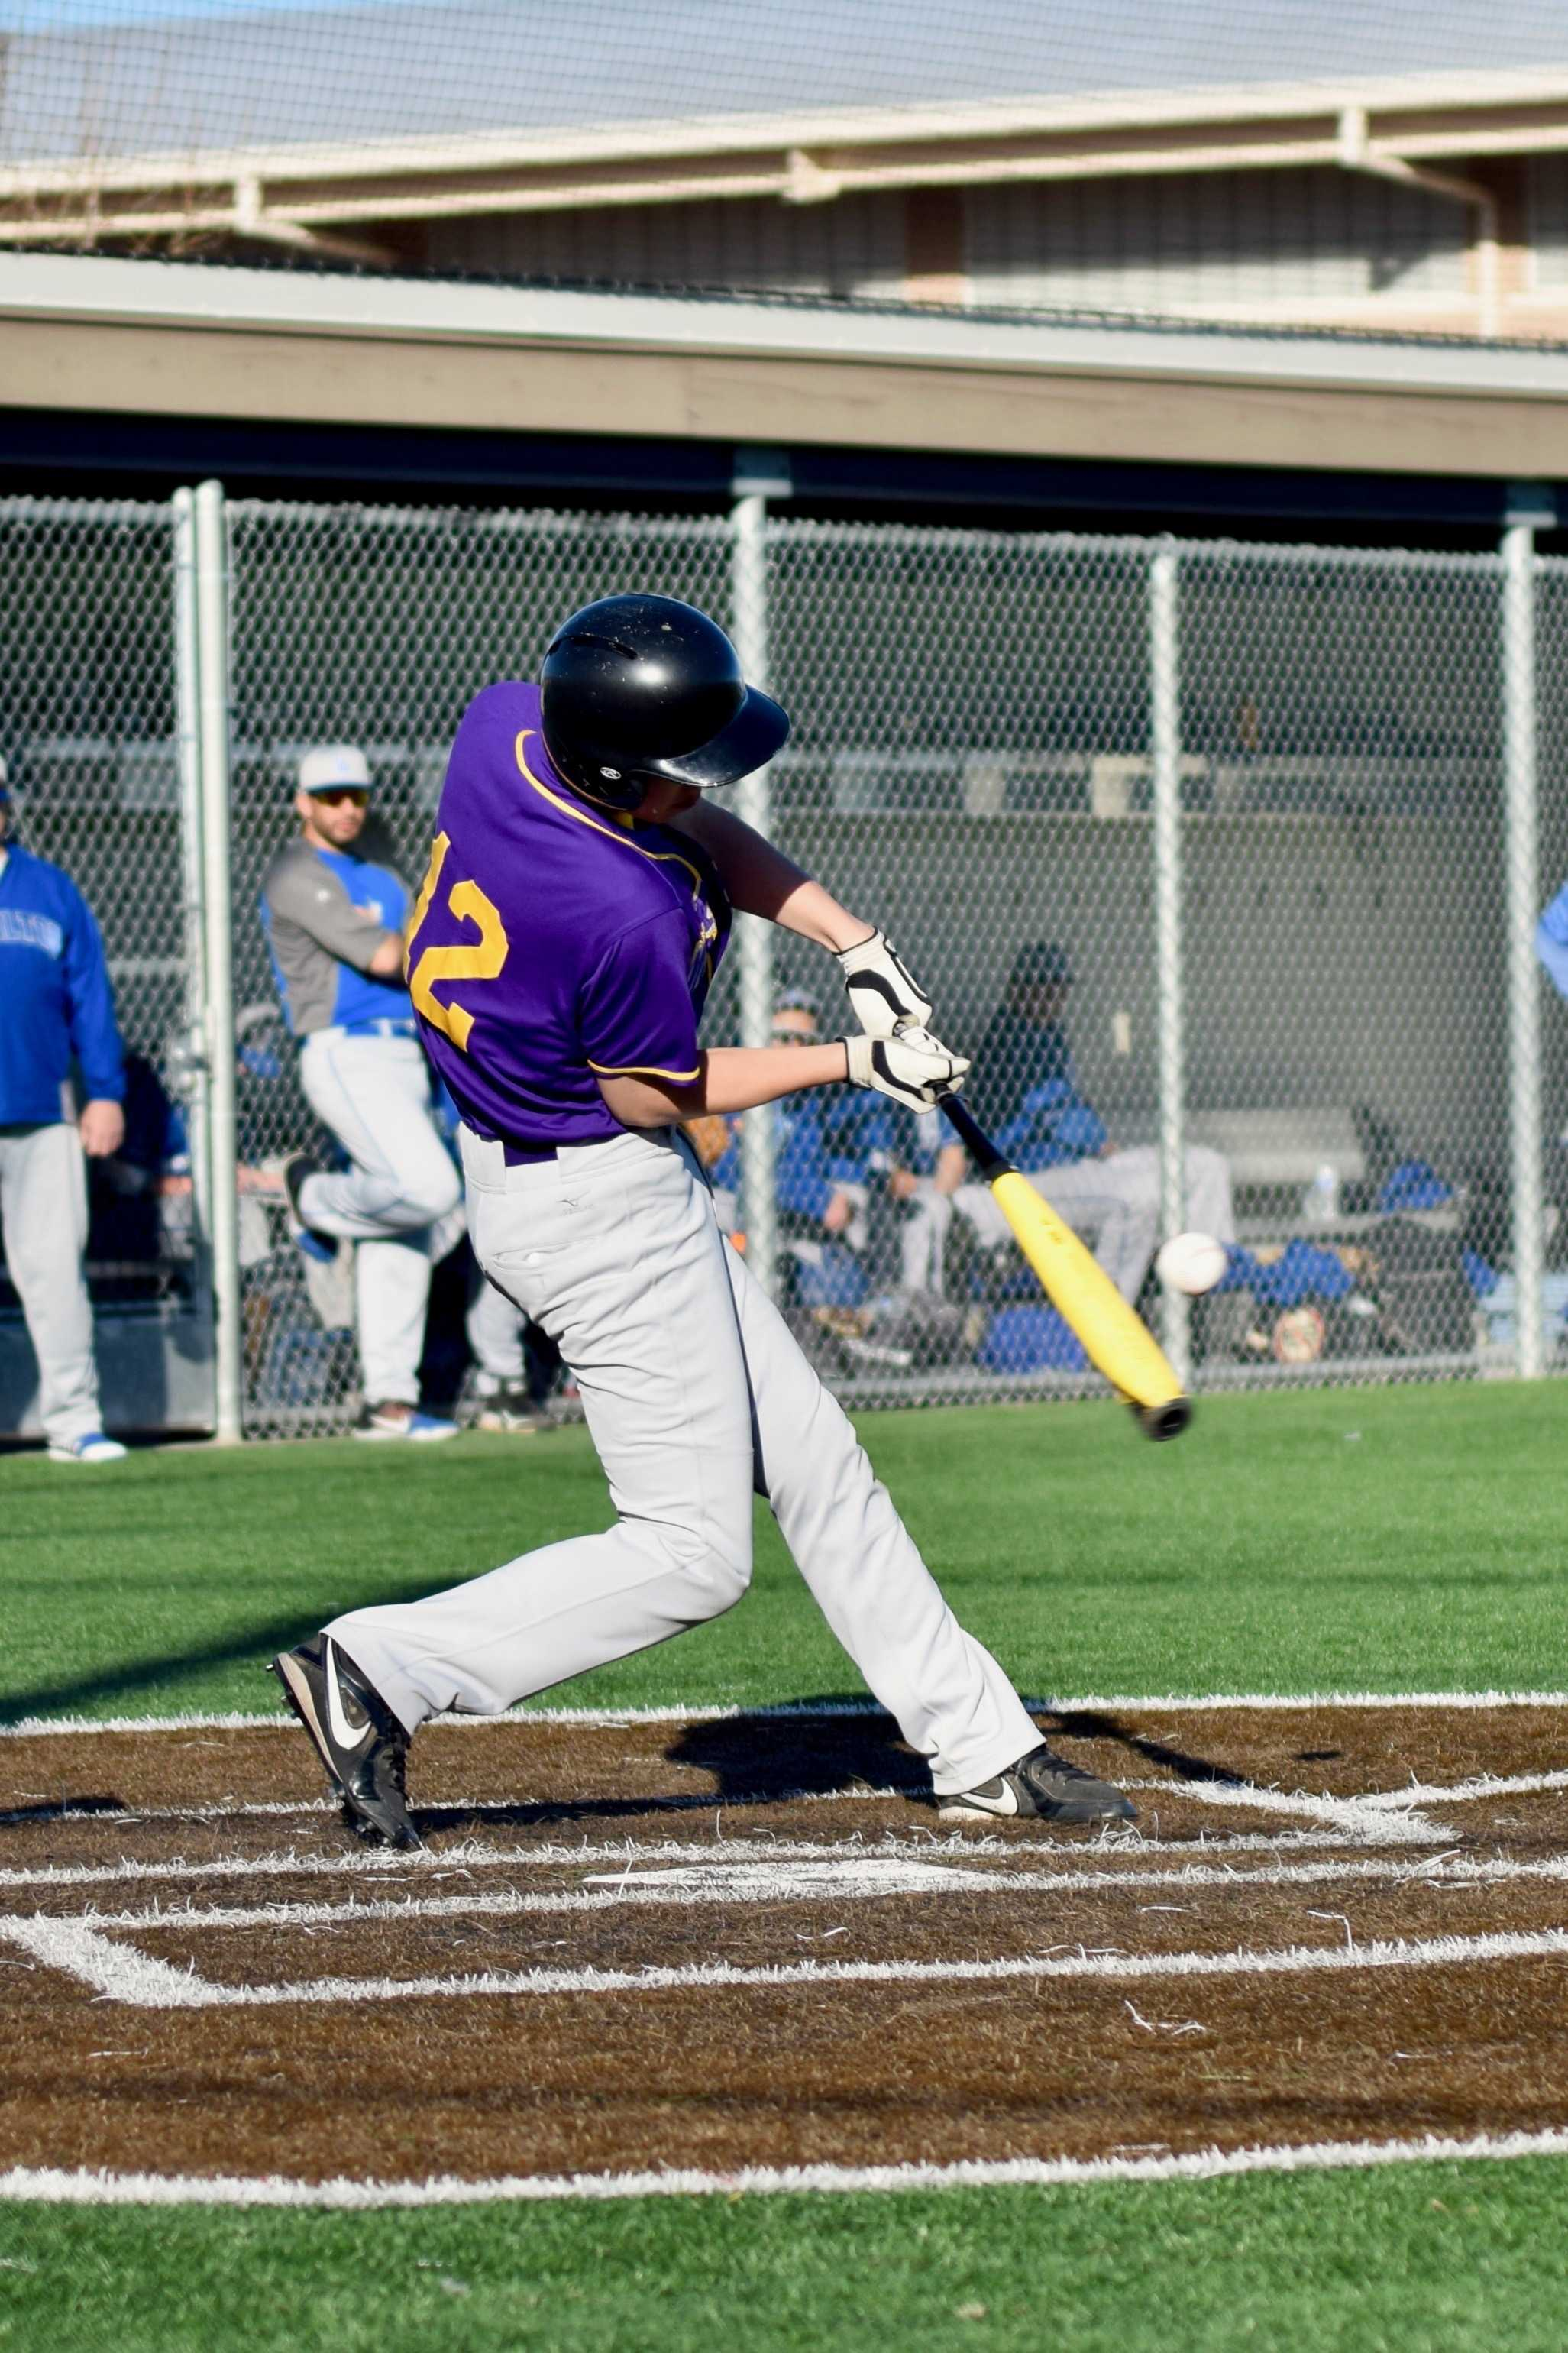 PHOTOS- Baseball vs Los Altos - 4